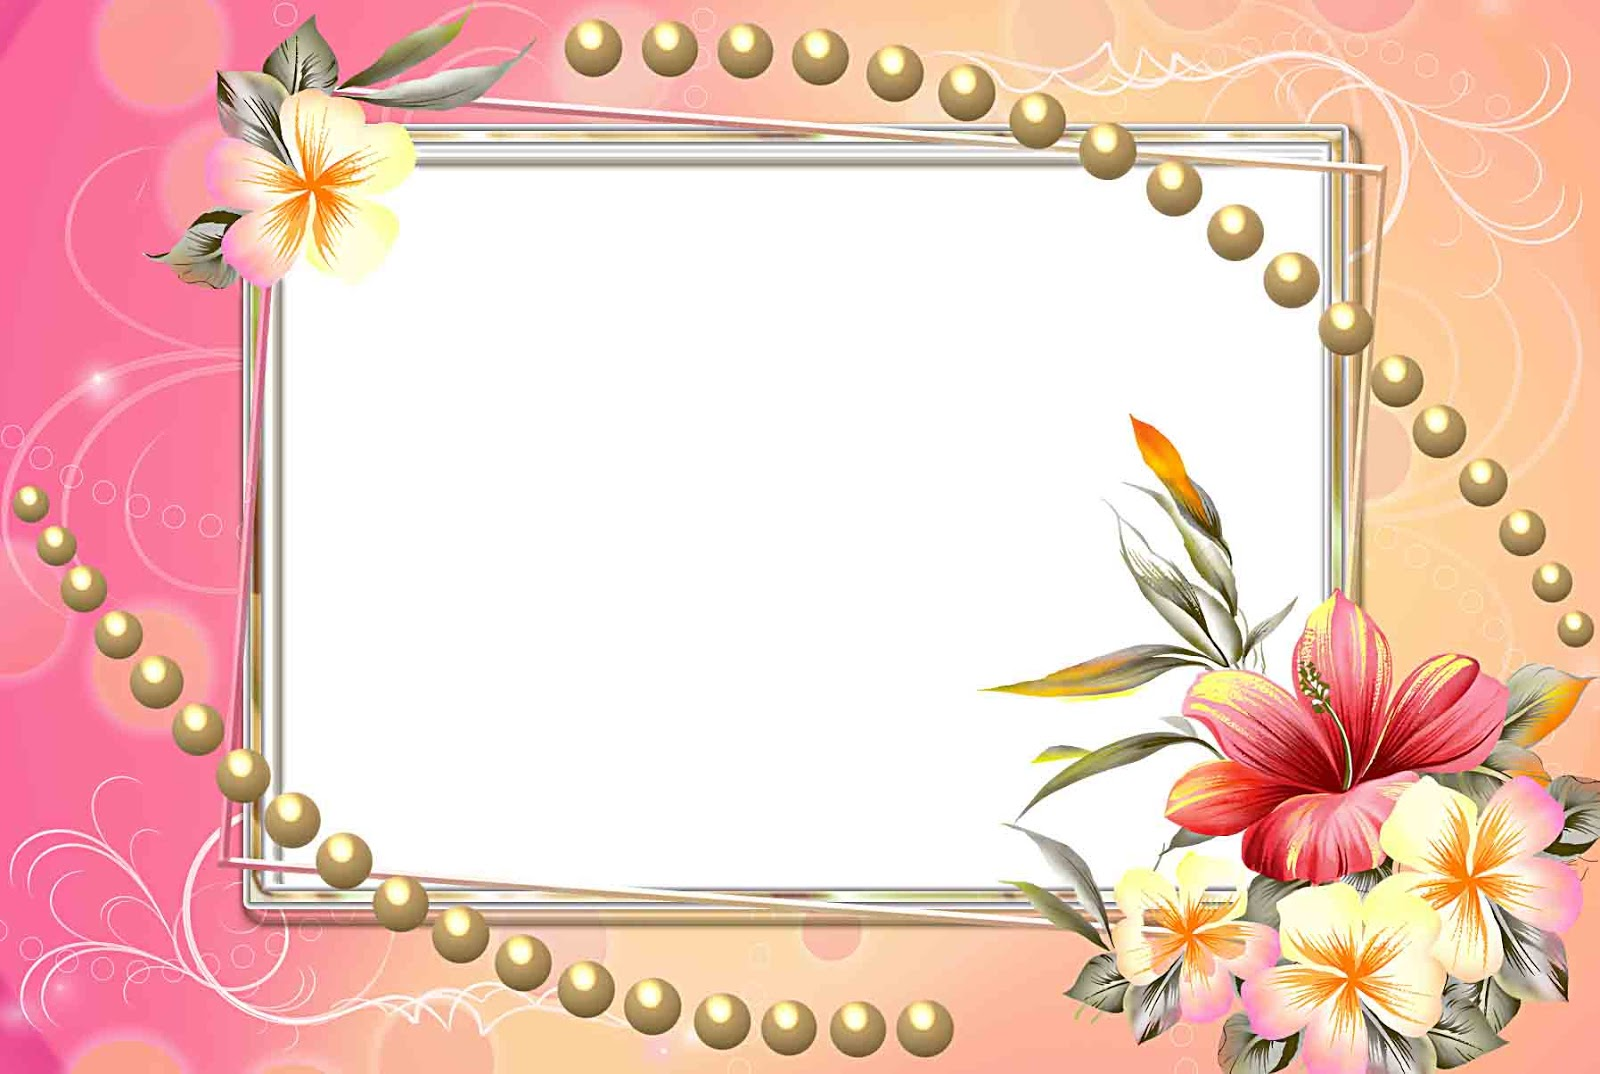 Photoshop Frames Images HD Wallpaper - all 4u wallpaper